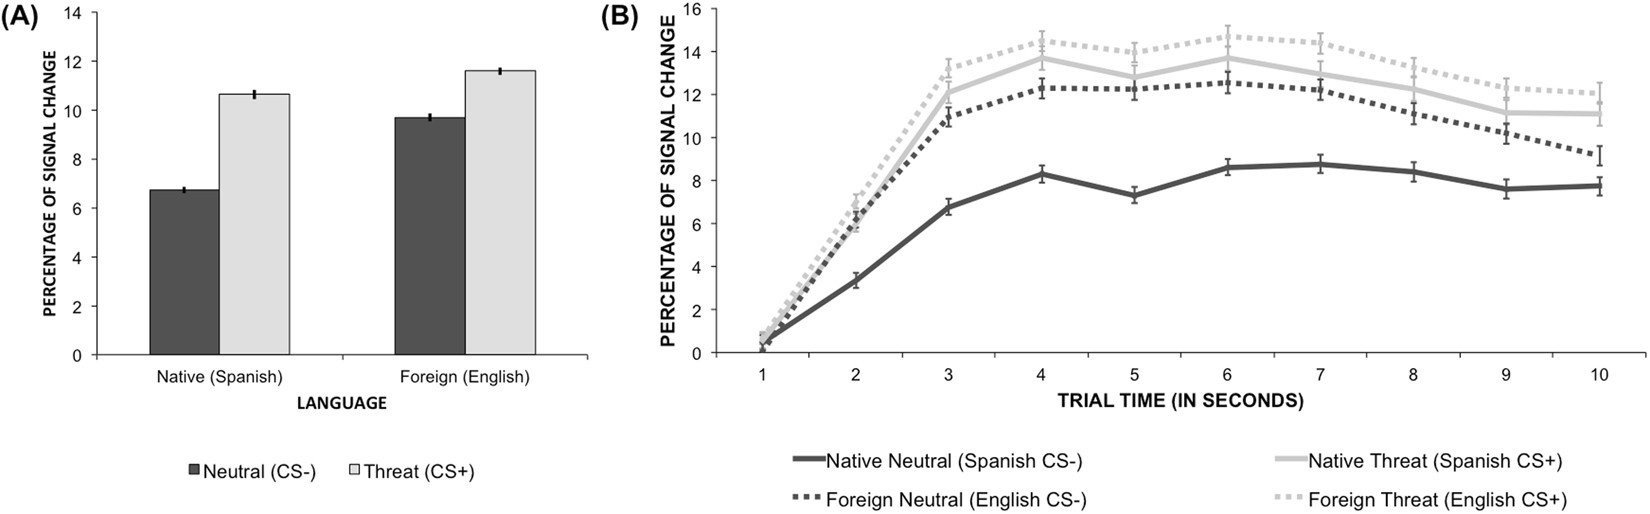 The effect of foreign language in fear acquisition | Scientific Reports